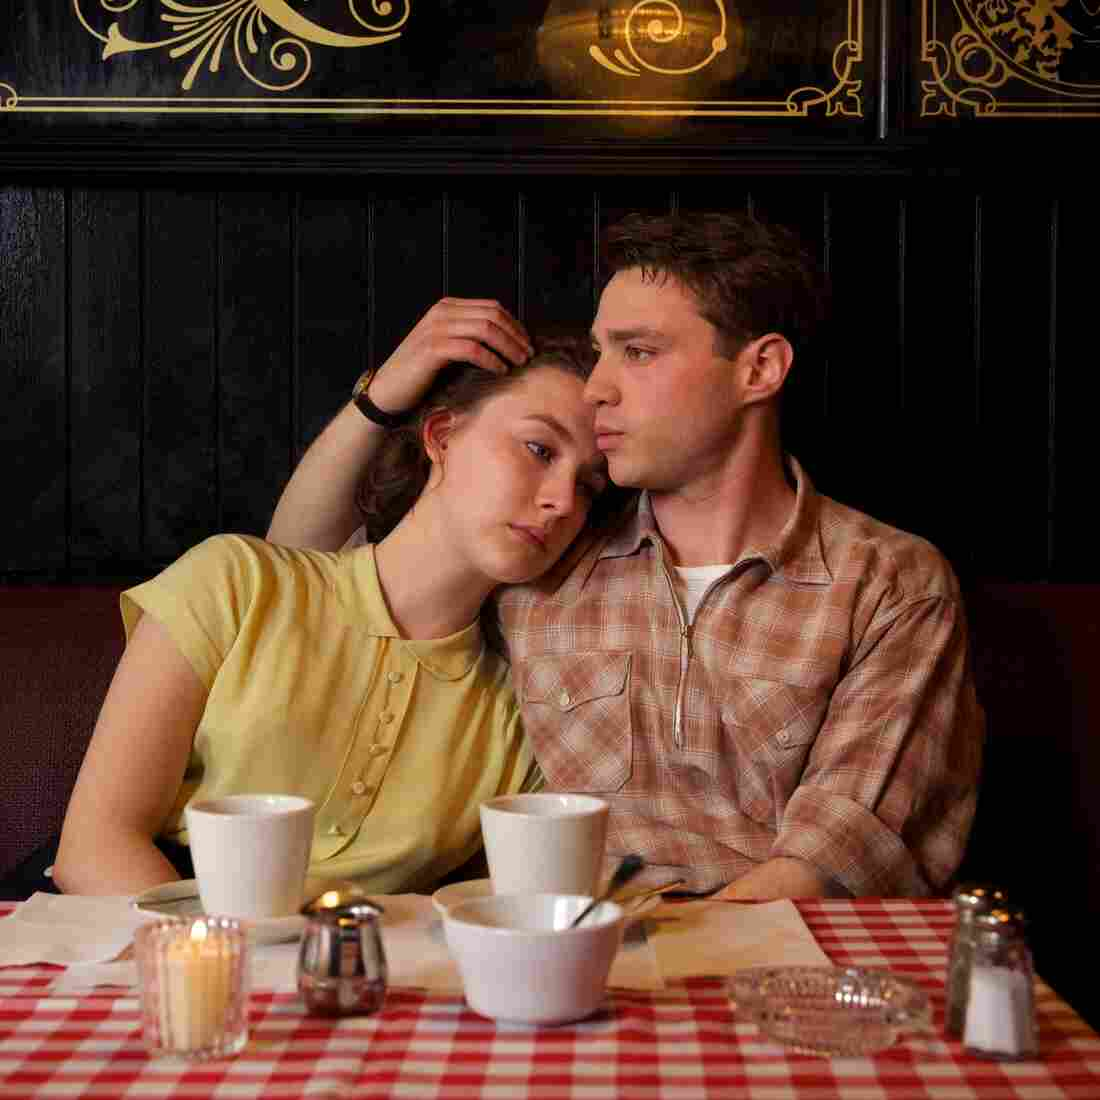 Saoirse Ronan as Eilis and Emory Cohen as Tony in Brooklyn.